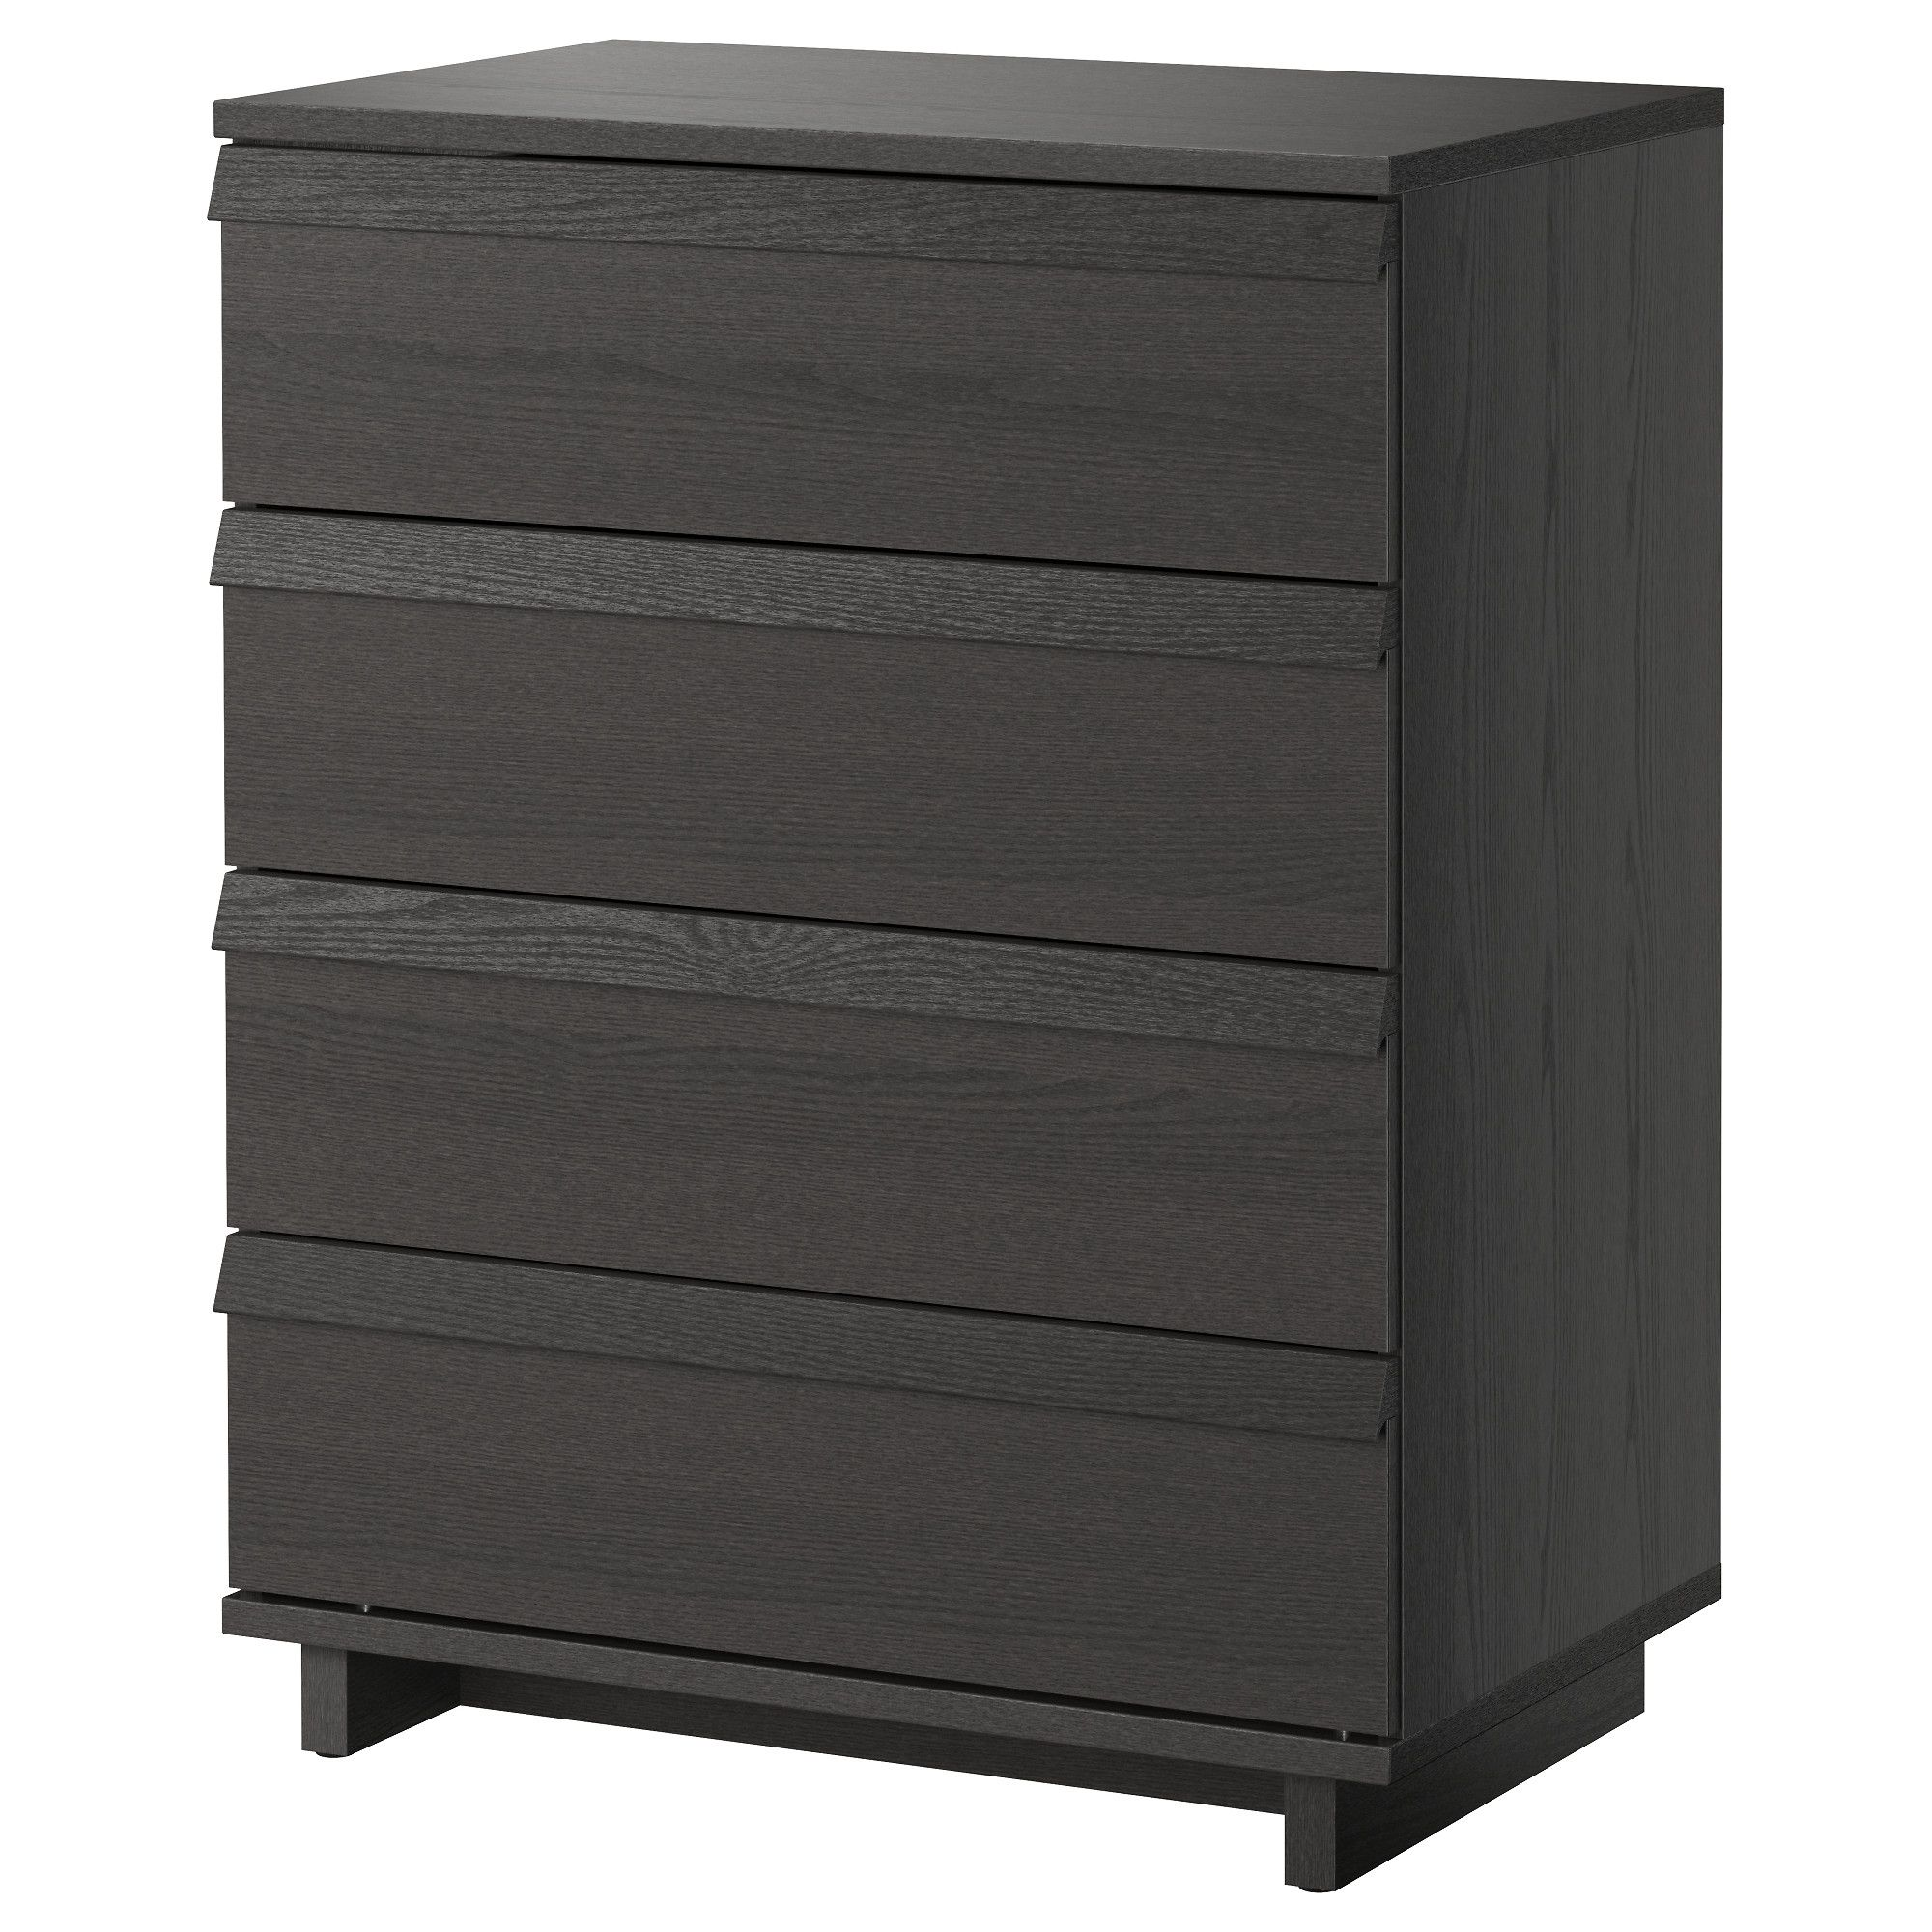 Oppland 4 Drawer Chest Brown Stained Ash Veneer Ikea Oppland Chest Of Drawers Ikea